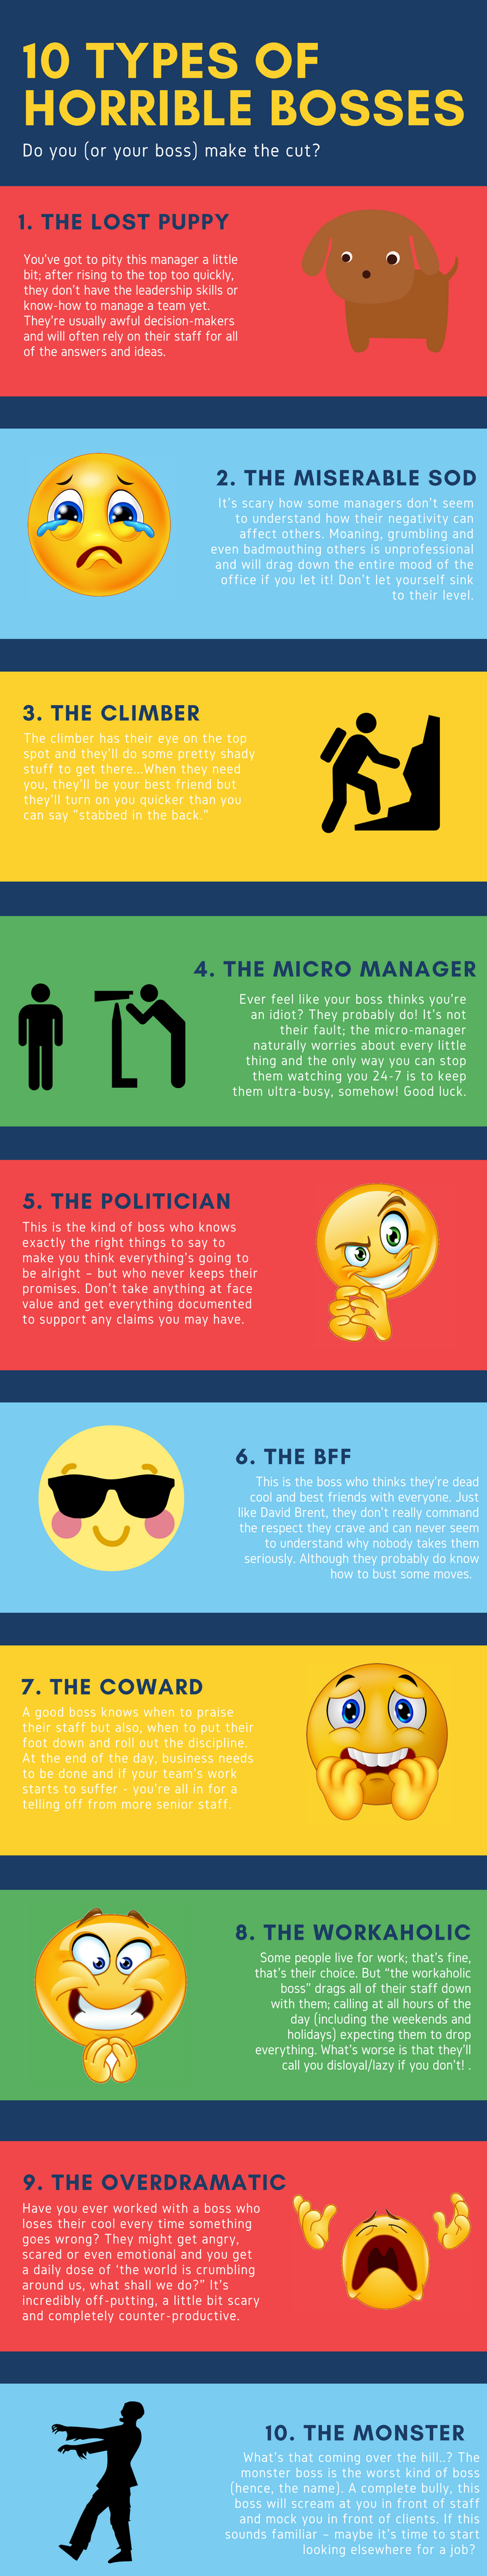 horrible bosses infographic